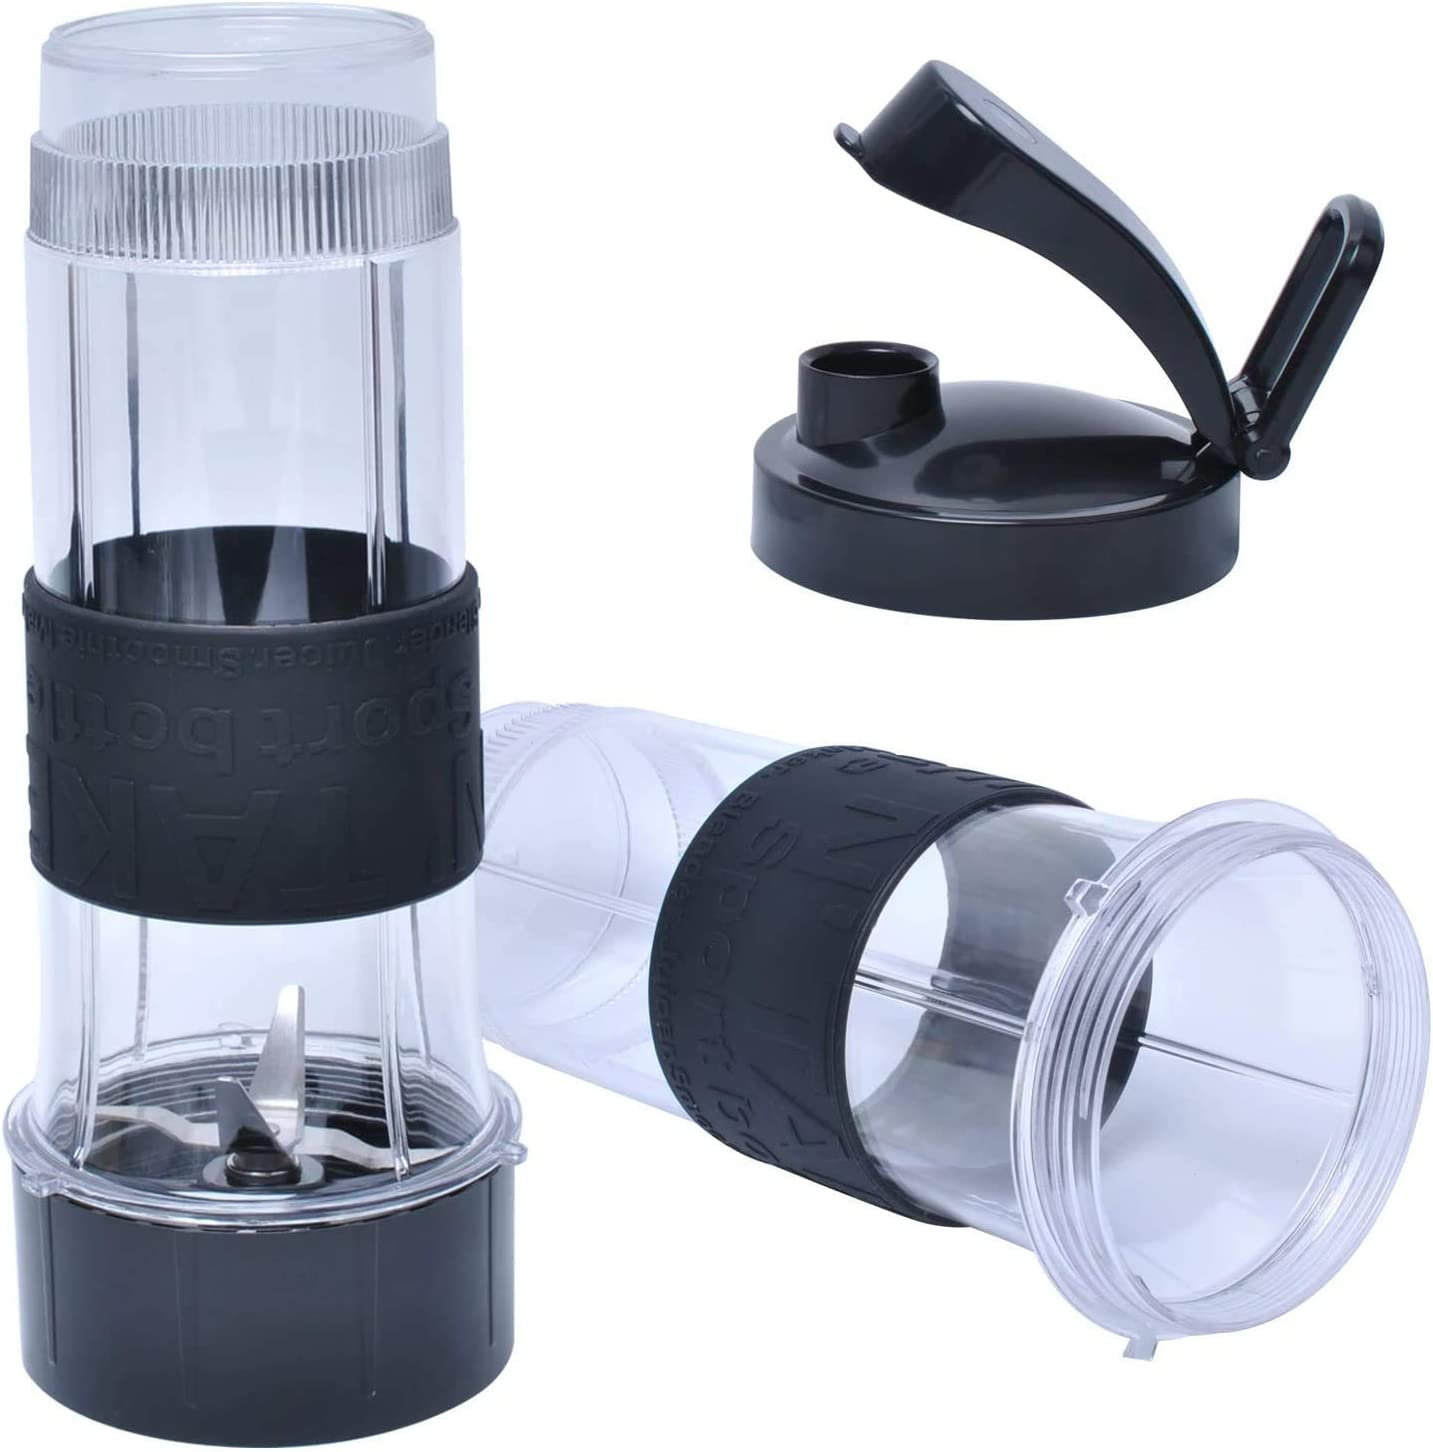 20 oz Tall Cup With Flip Top to Go Lid and Cross Blade Compatible with Magic Bullet 250W MB1001 Blender